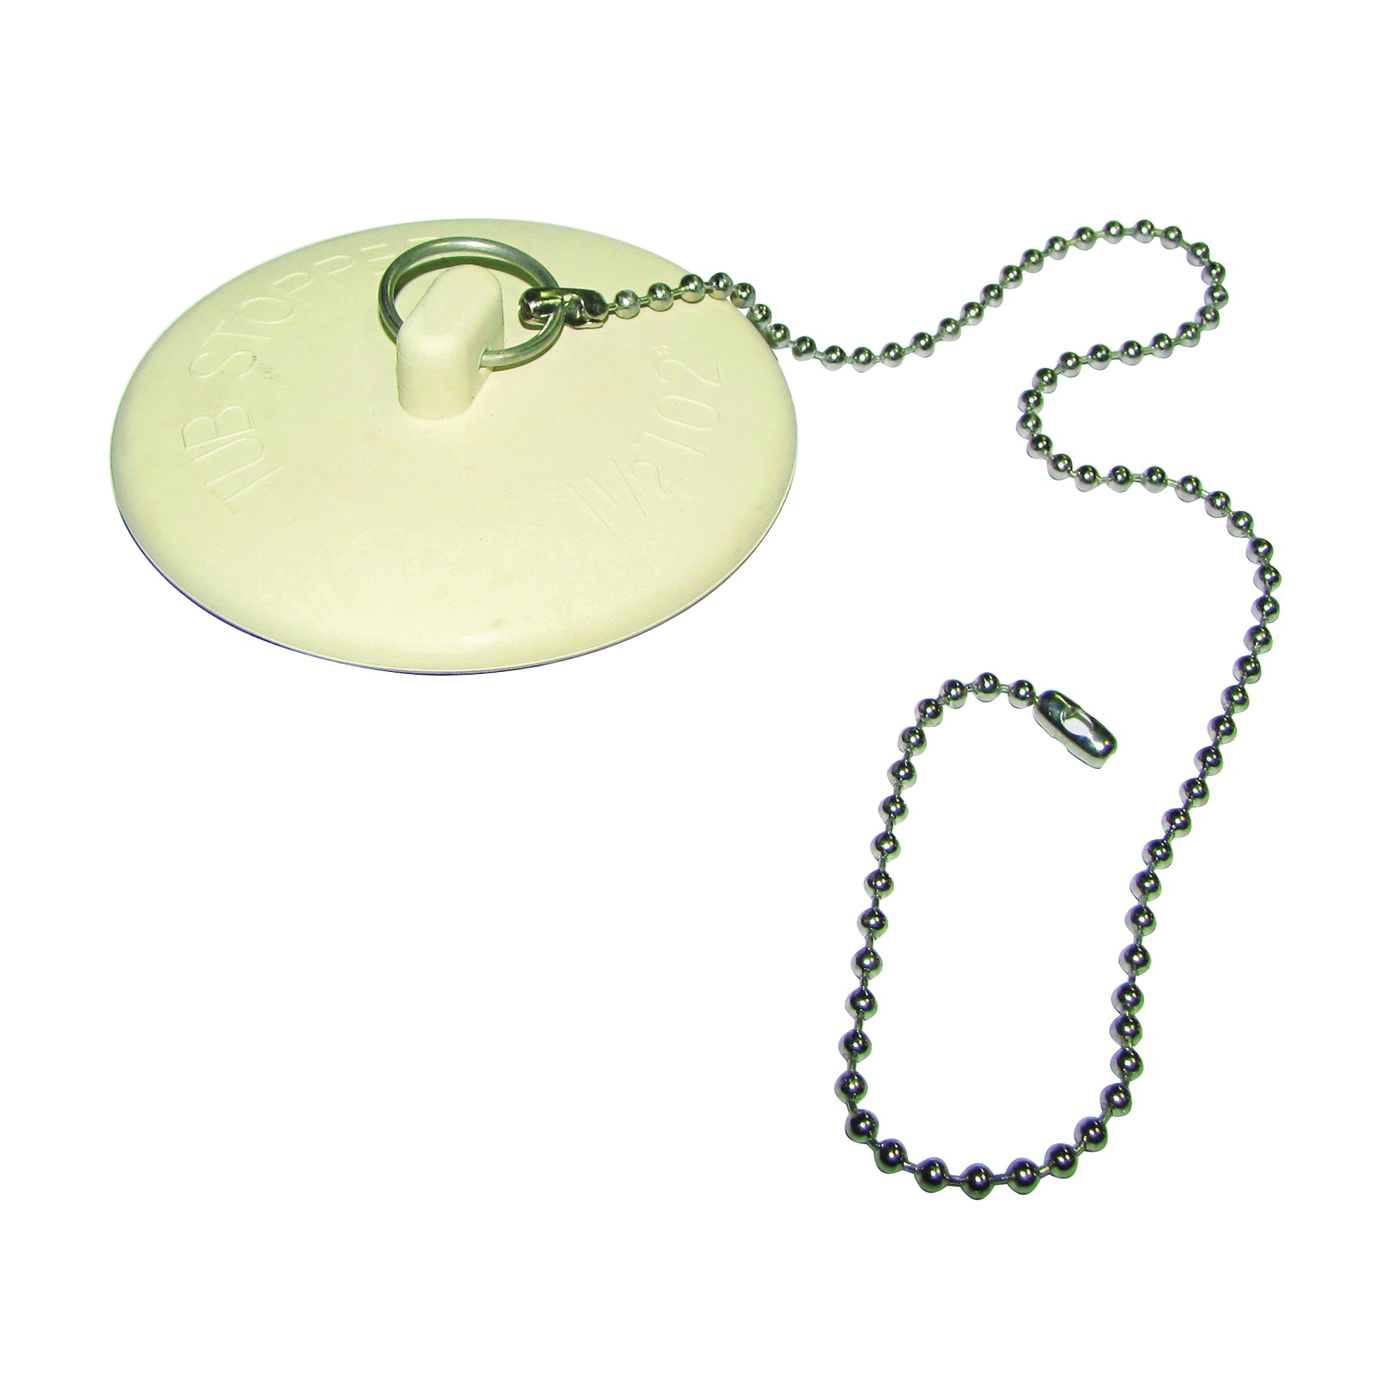 Picture of Plumb Pak PP820-43 Tub Stopper and Chain, Rubber, White, For: Laundry and Bathtubs with 1-1/2 to 2 in Drain